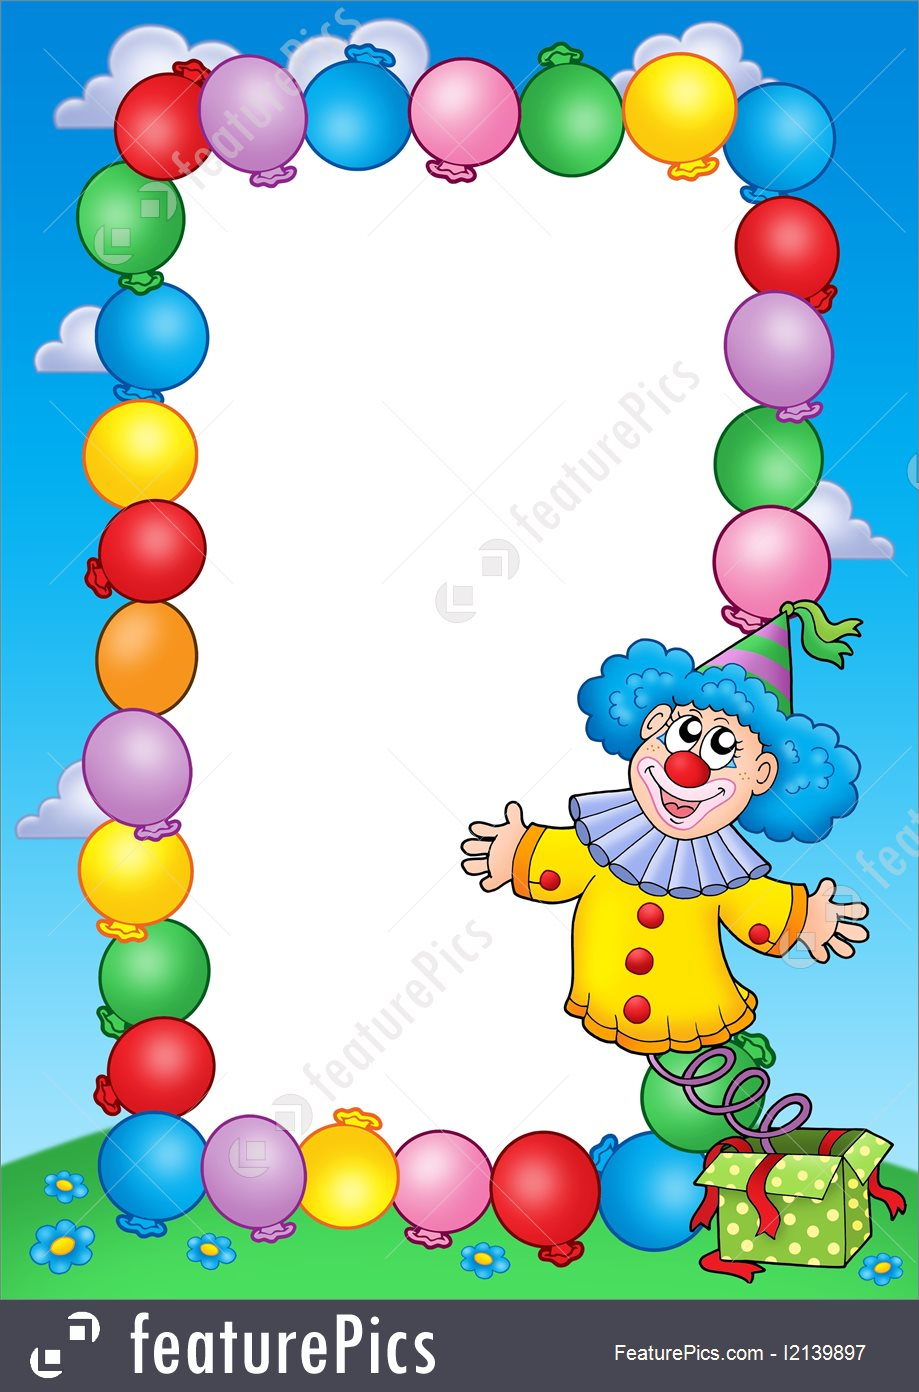 Templates  Party Invitation Frame With Clown 3